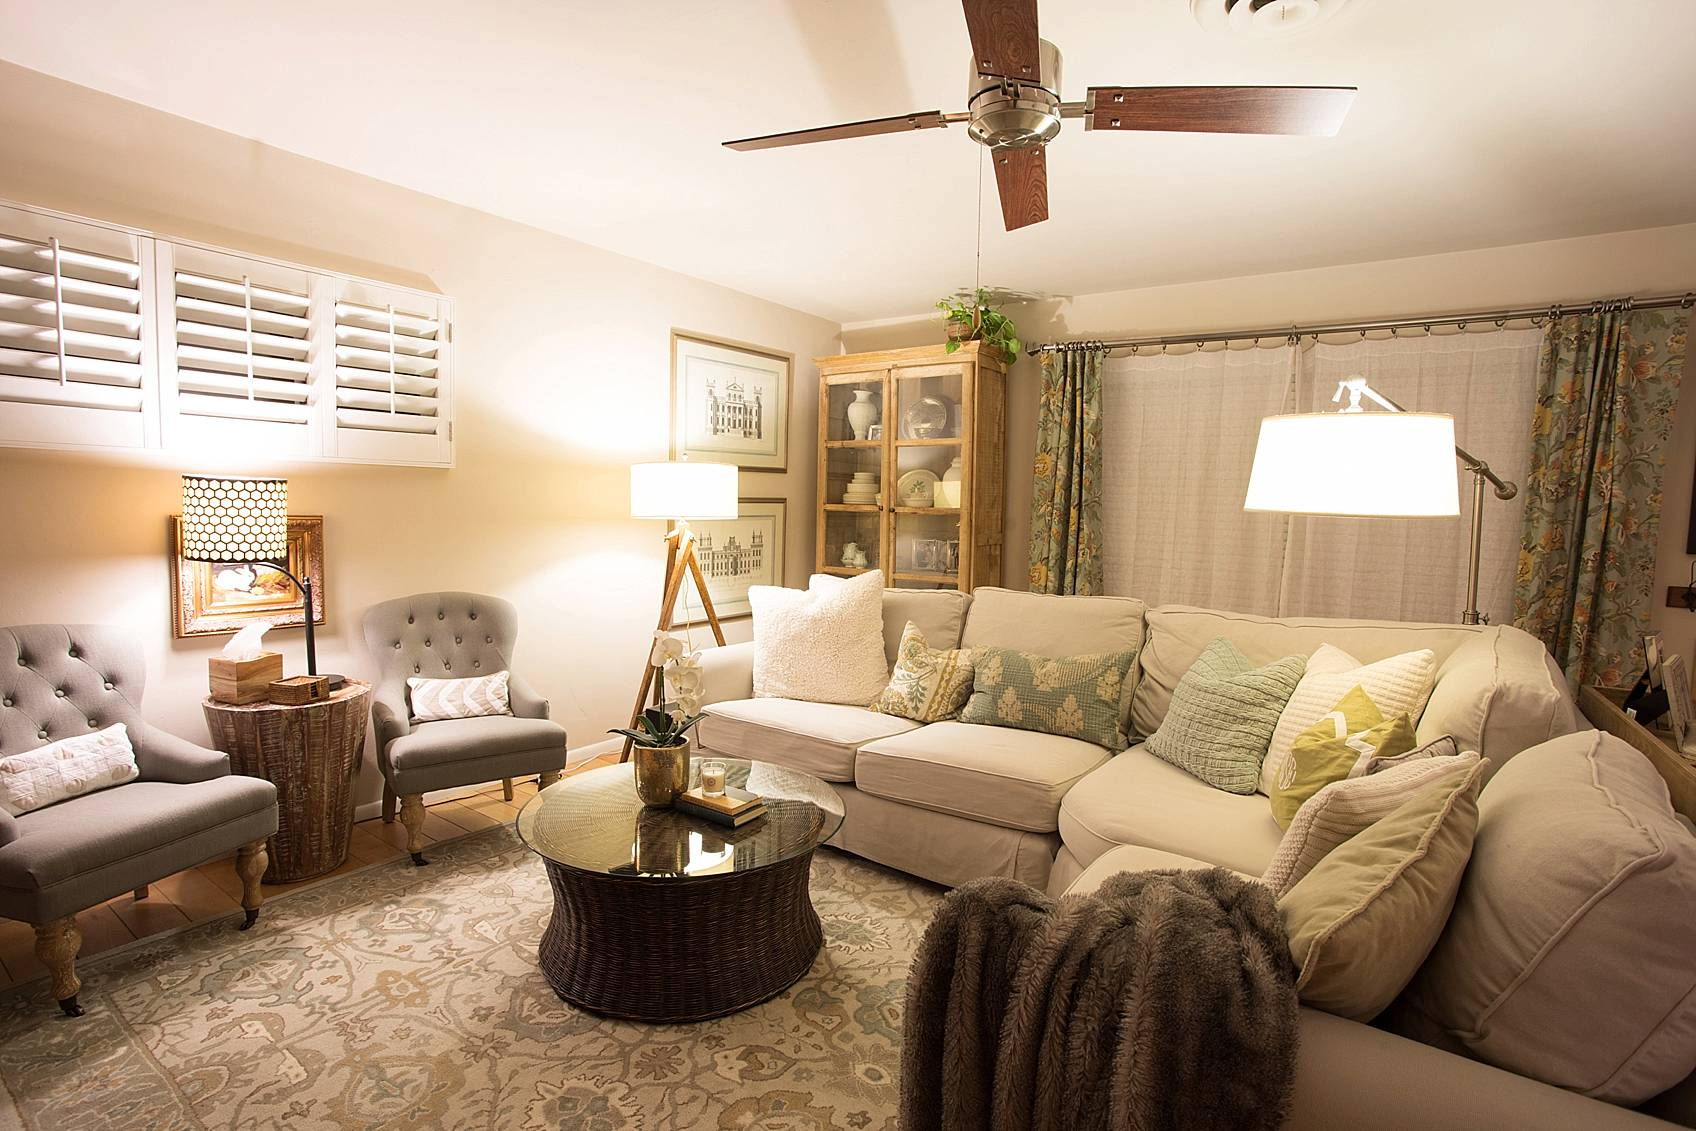 phoenix home decor blogger living room at night featuring finally light bulbs